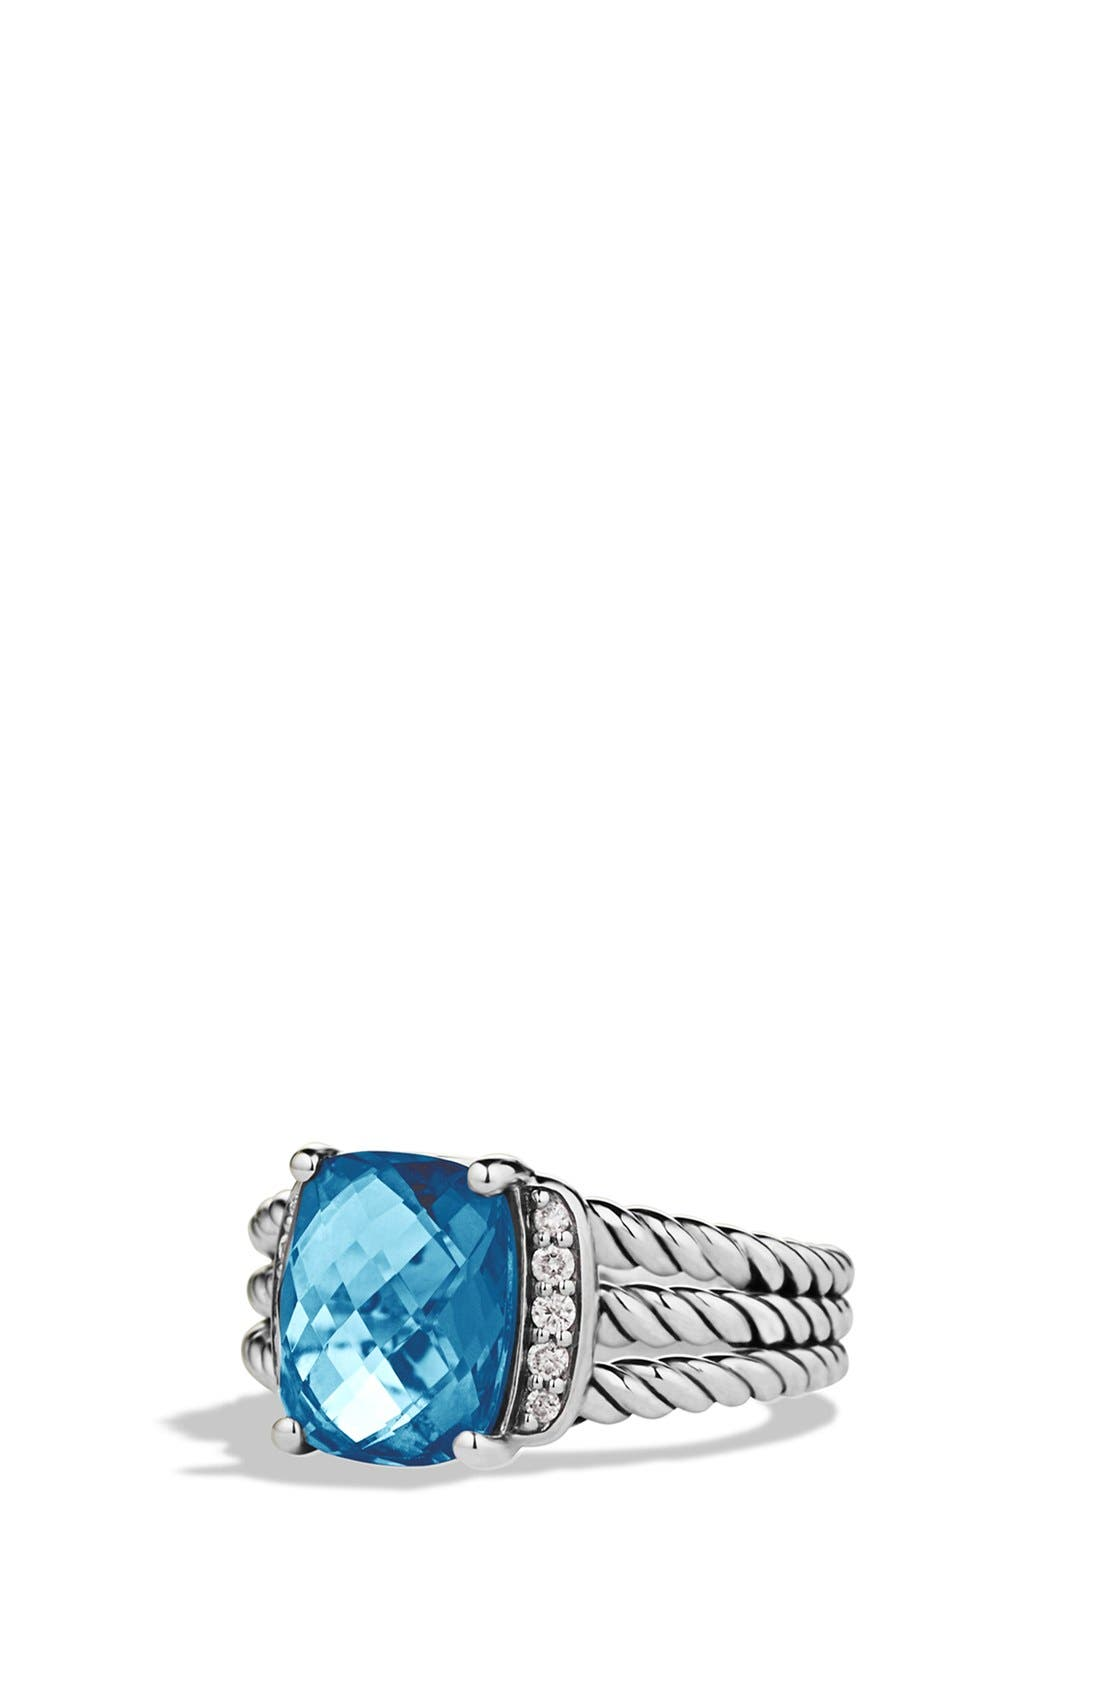 'Wheaton' Petite Ring with Semiprecious Stone & Diamonds,                         Main,                         color, Hampton Blue Topaz